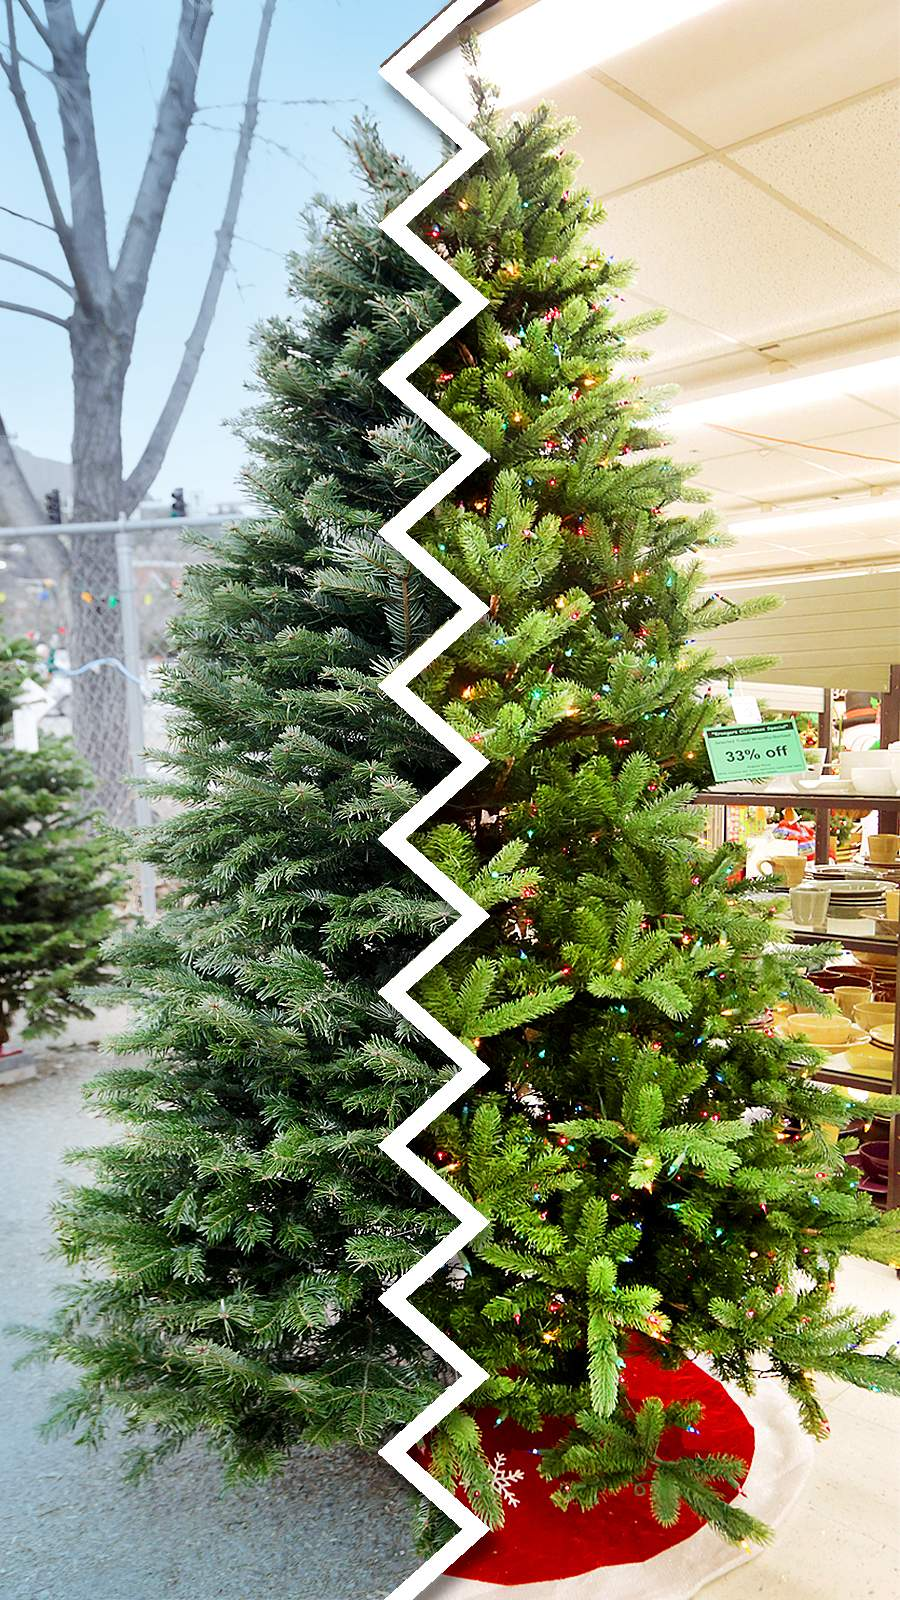 When it comes to Christmas trees, is real or fake the better environmental choice?